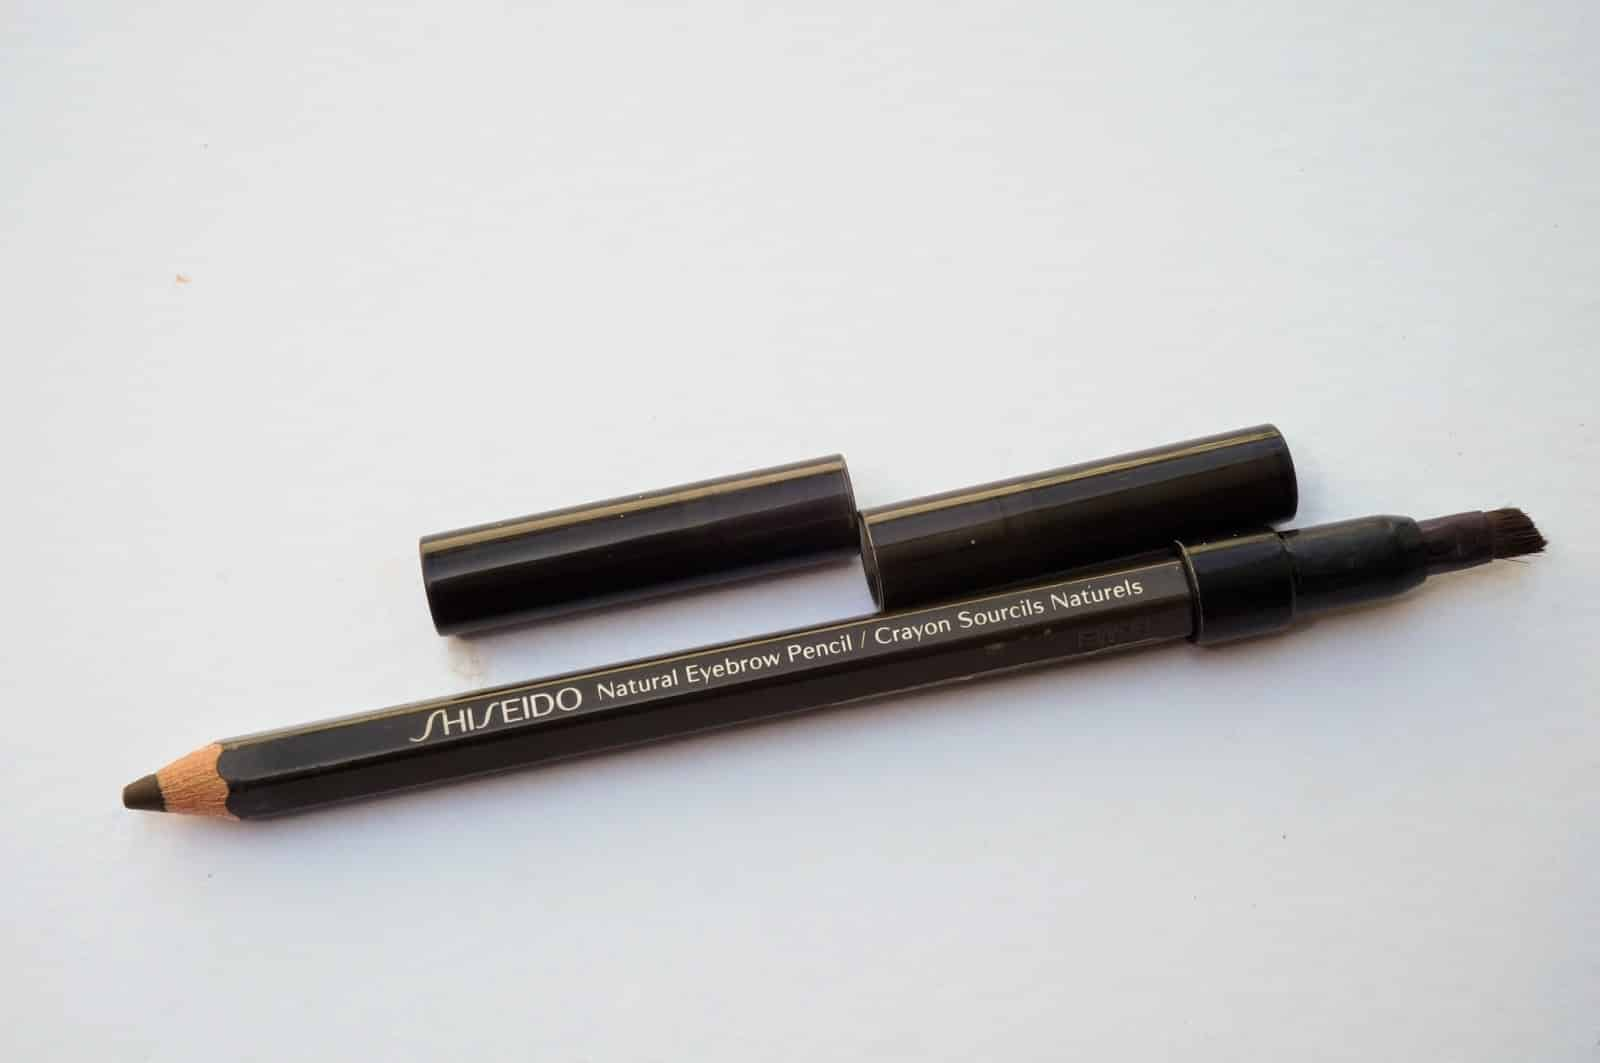 Natural-Eyebrow-Pencil-Shiseido